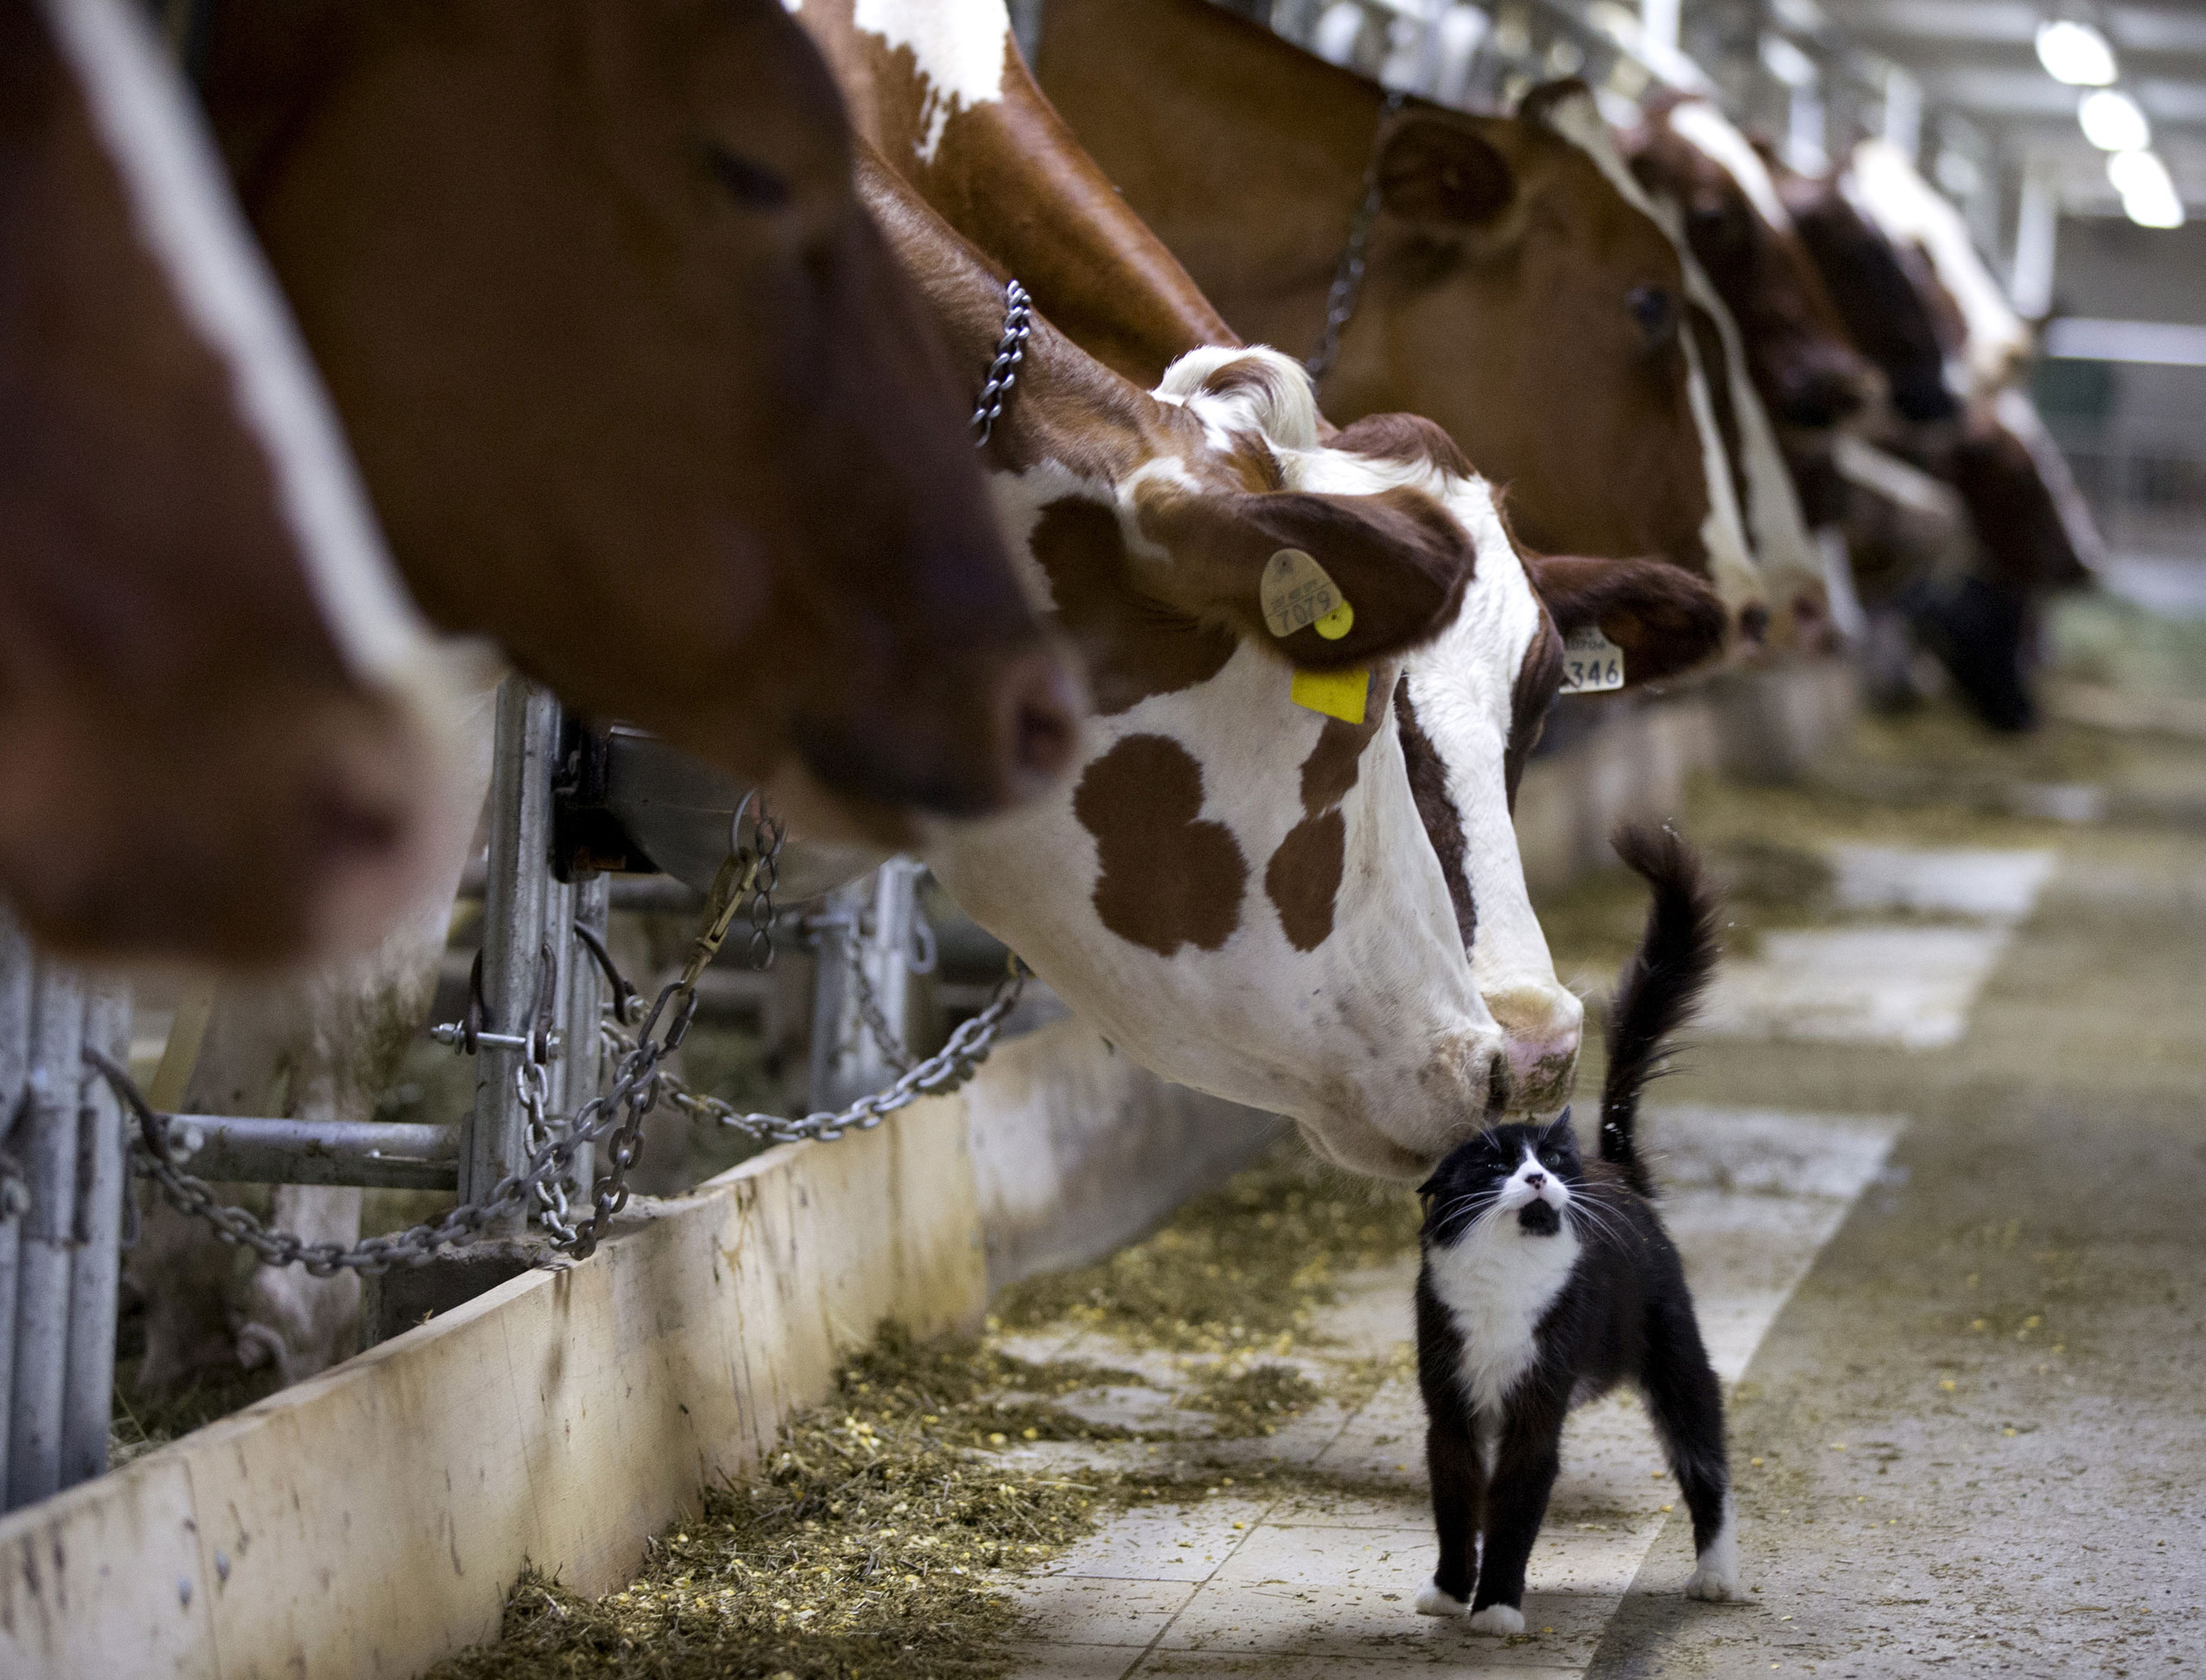 Dairy cows nuzzle a barn cat as they wait to be milked at a farm in Granby, Quebec, July 26, 2015.